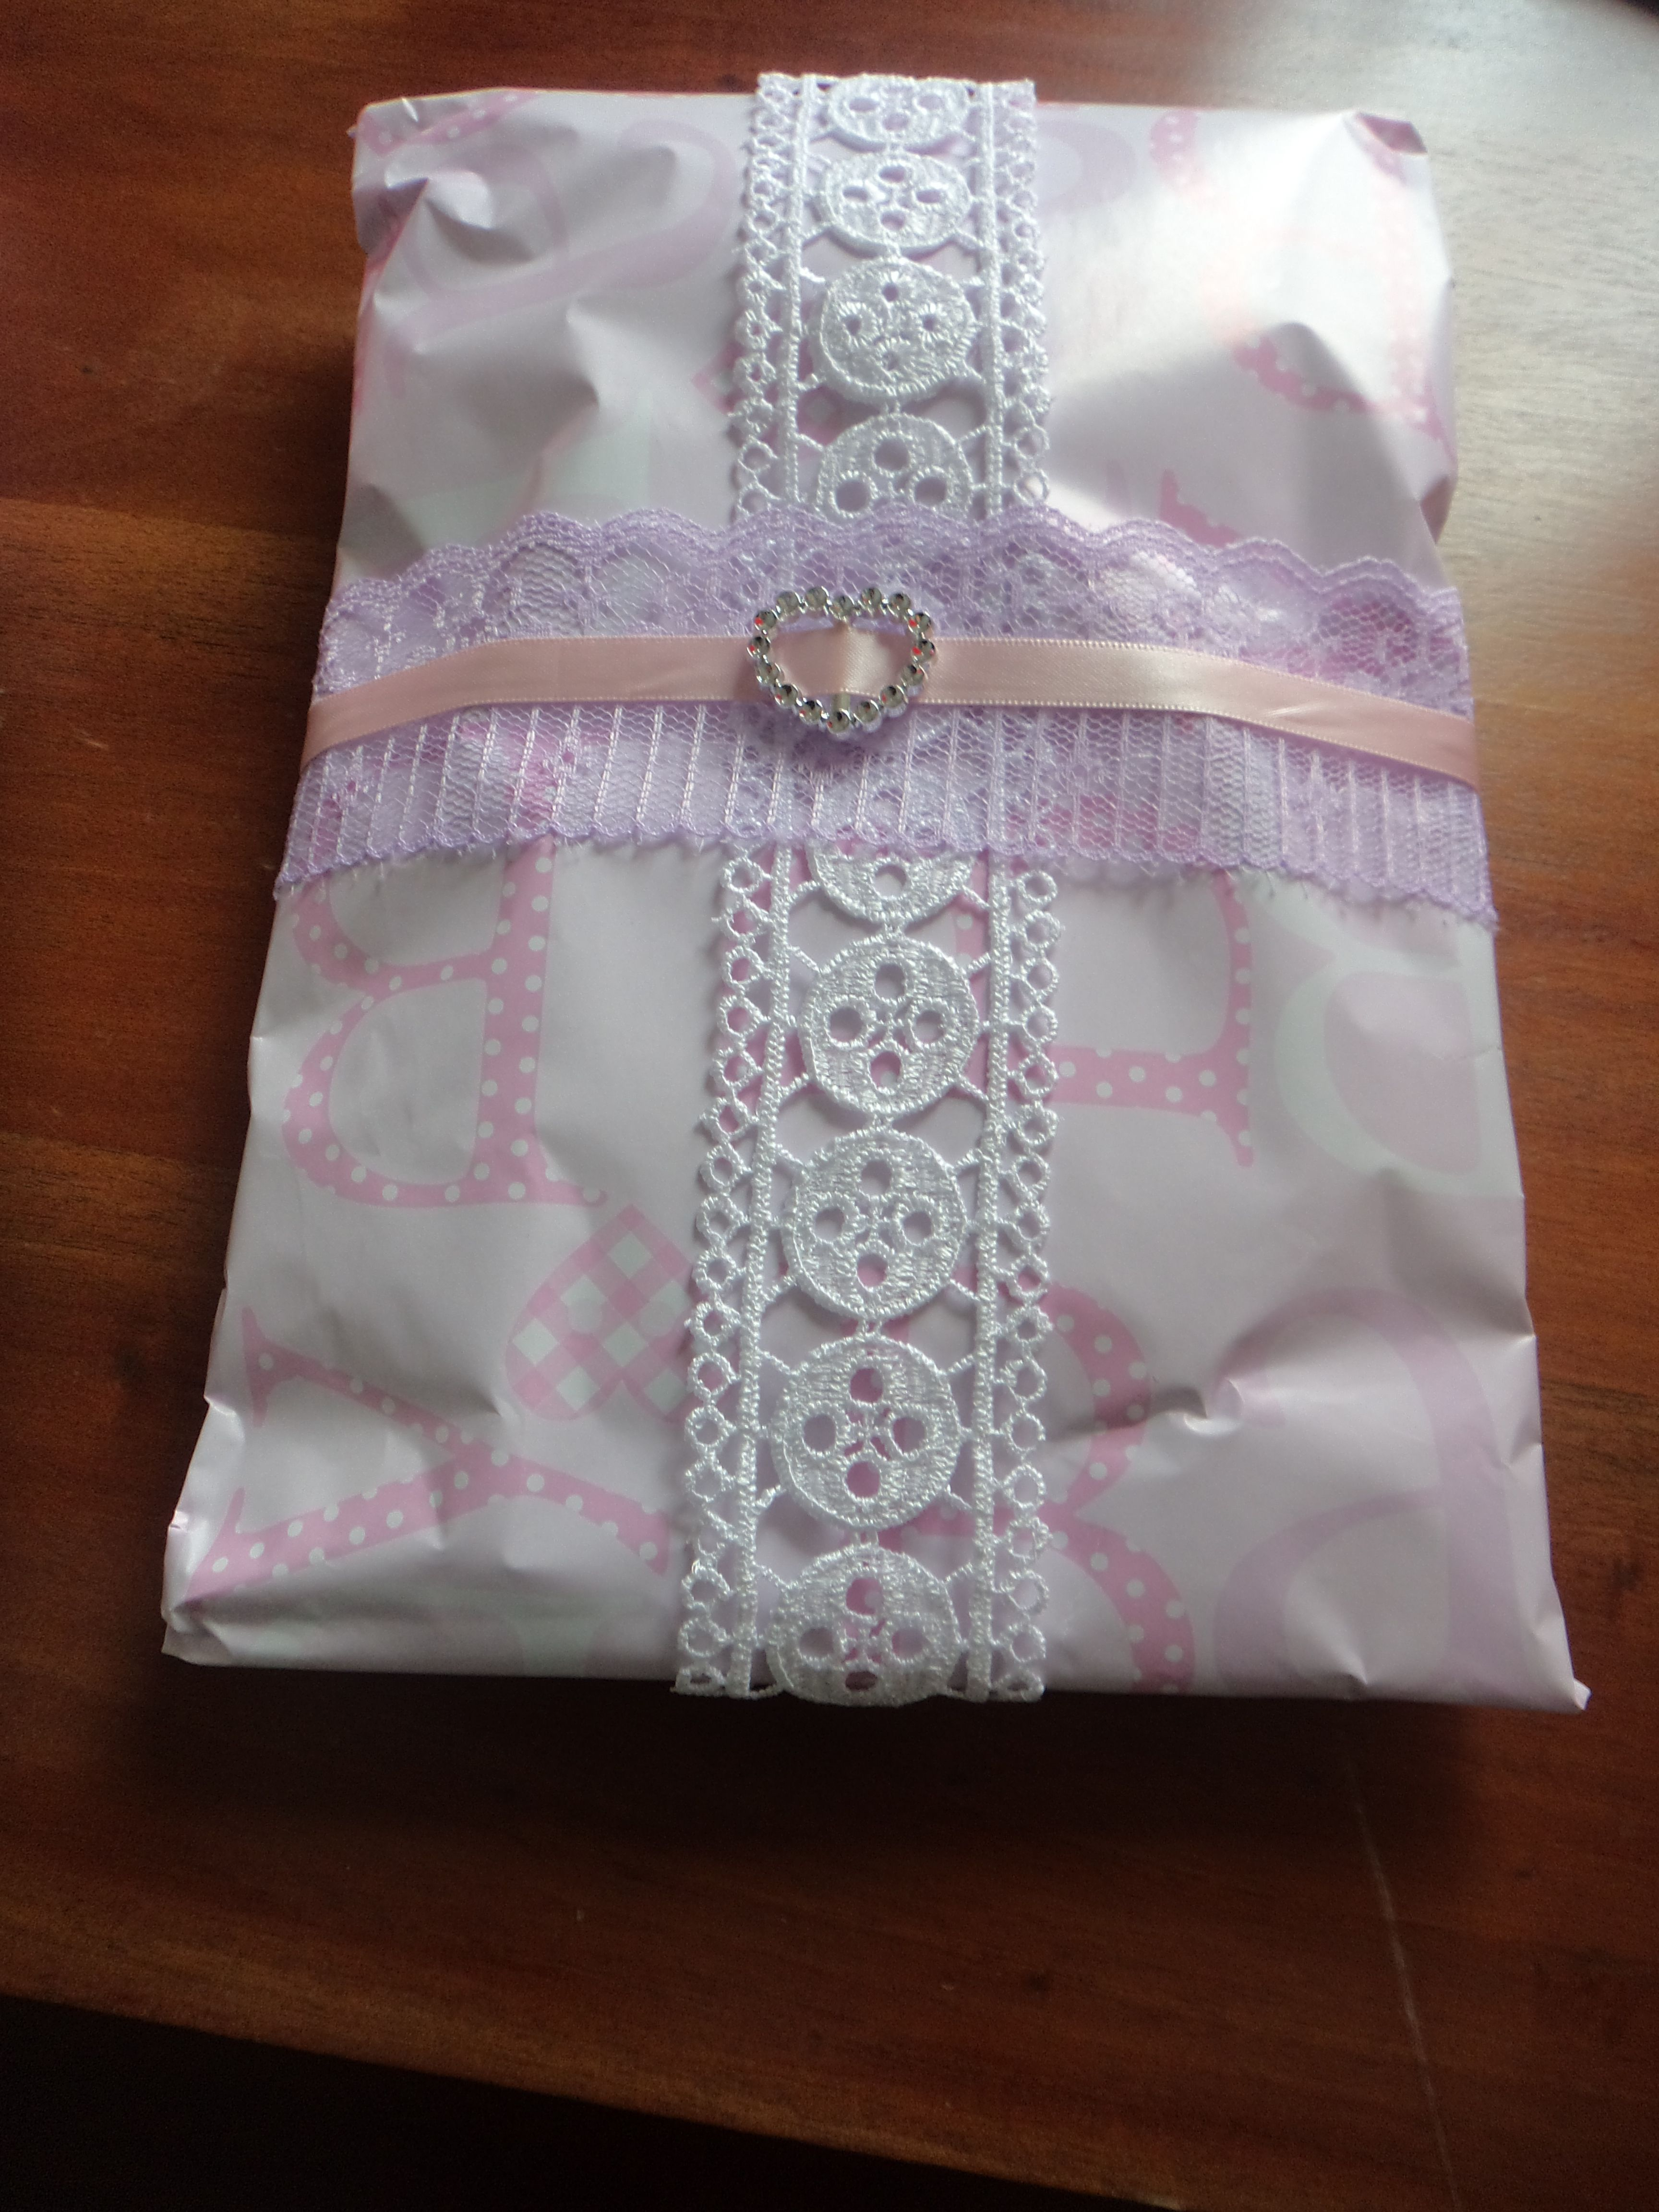 This Present Has Babies Clothes Inside So I Wrapped It With Pink